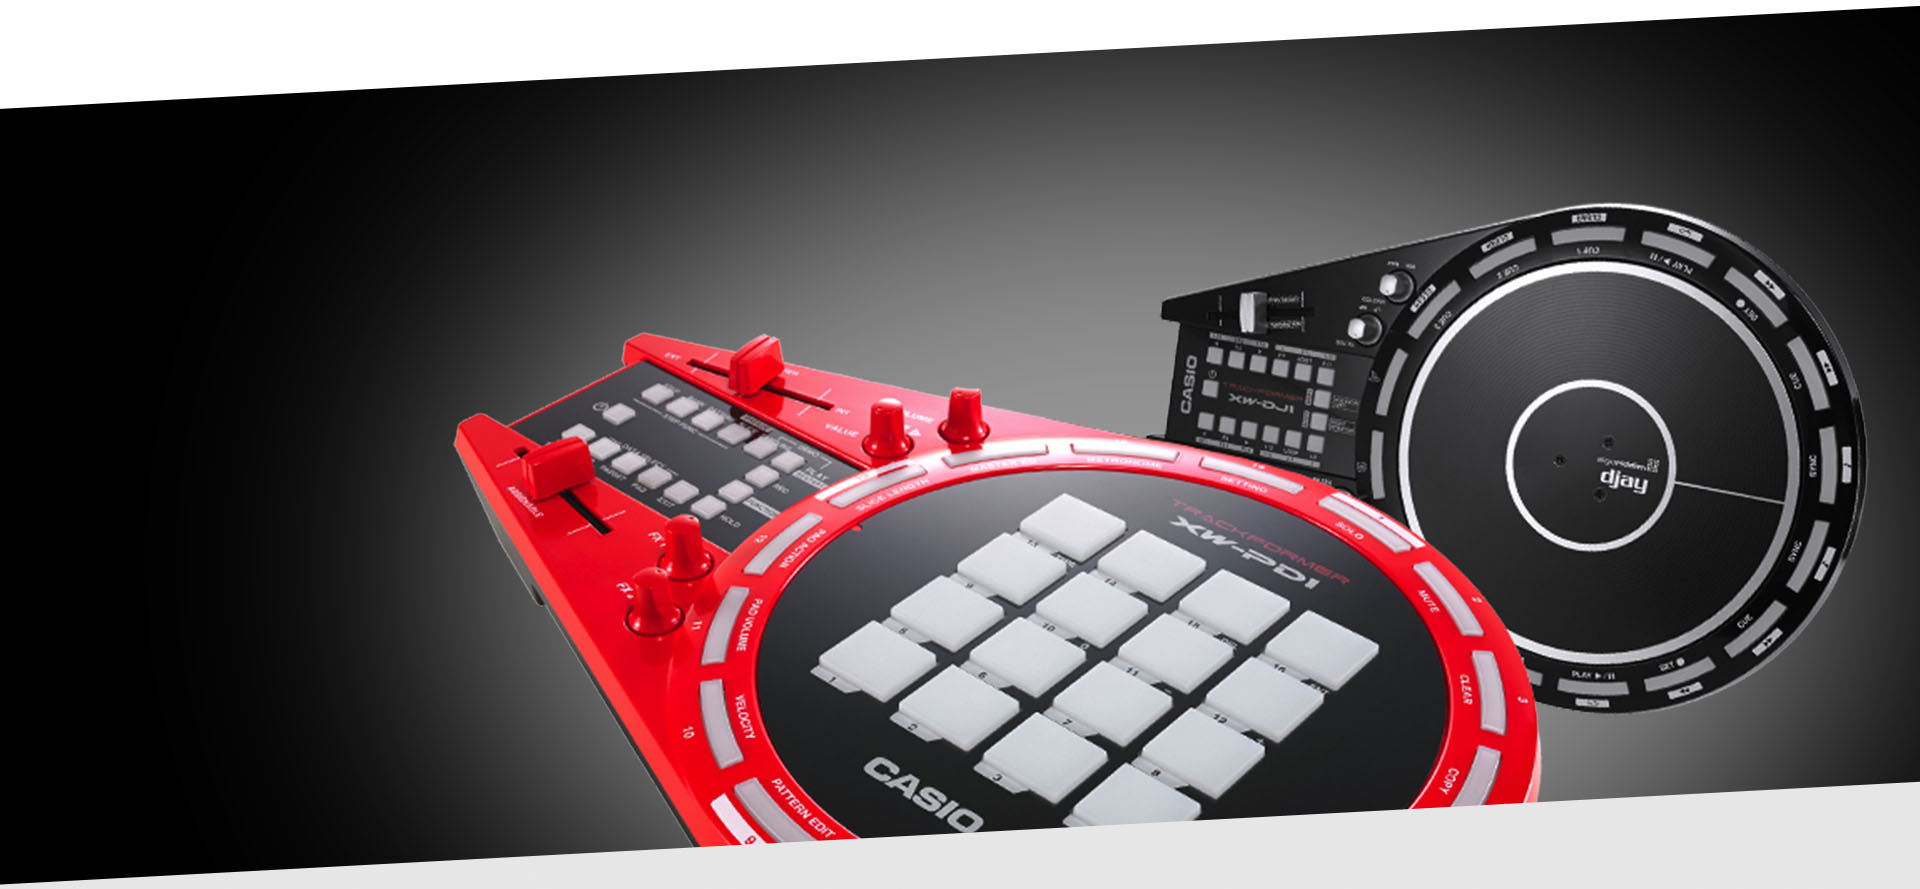 Trackformer - The All-In-One DJ Controller